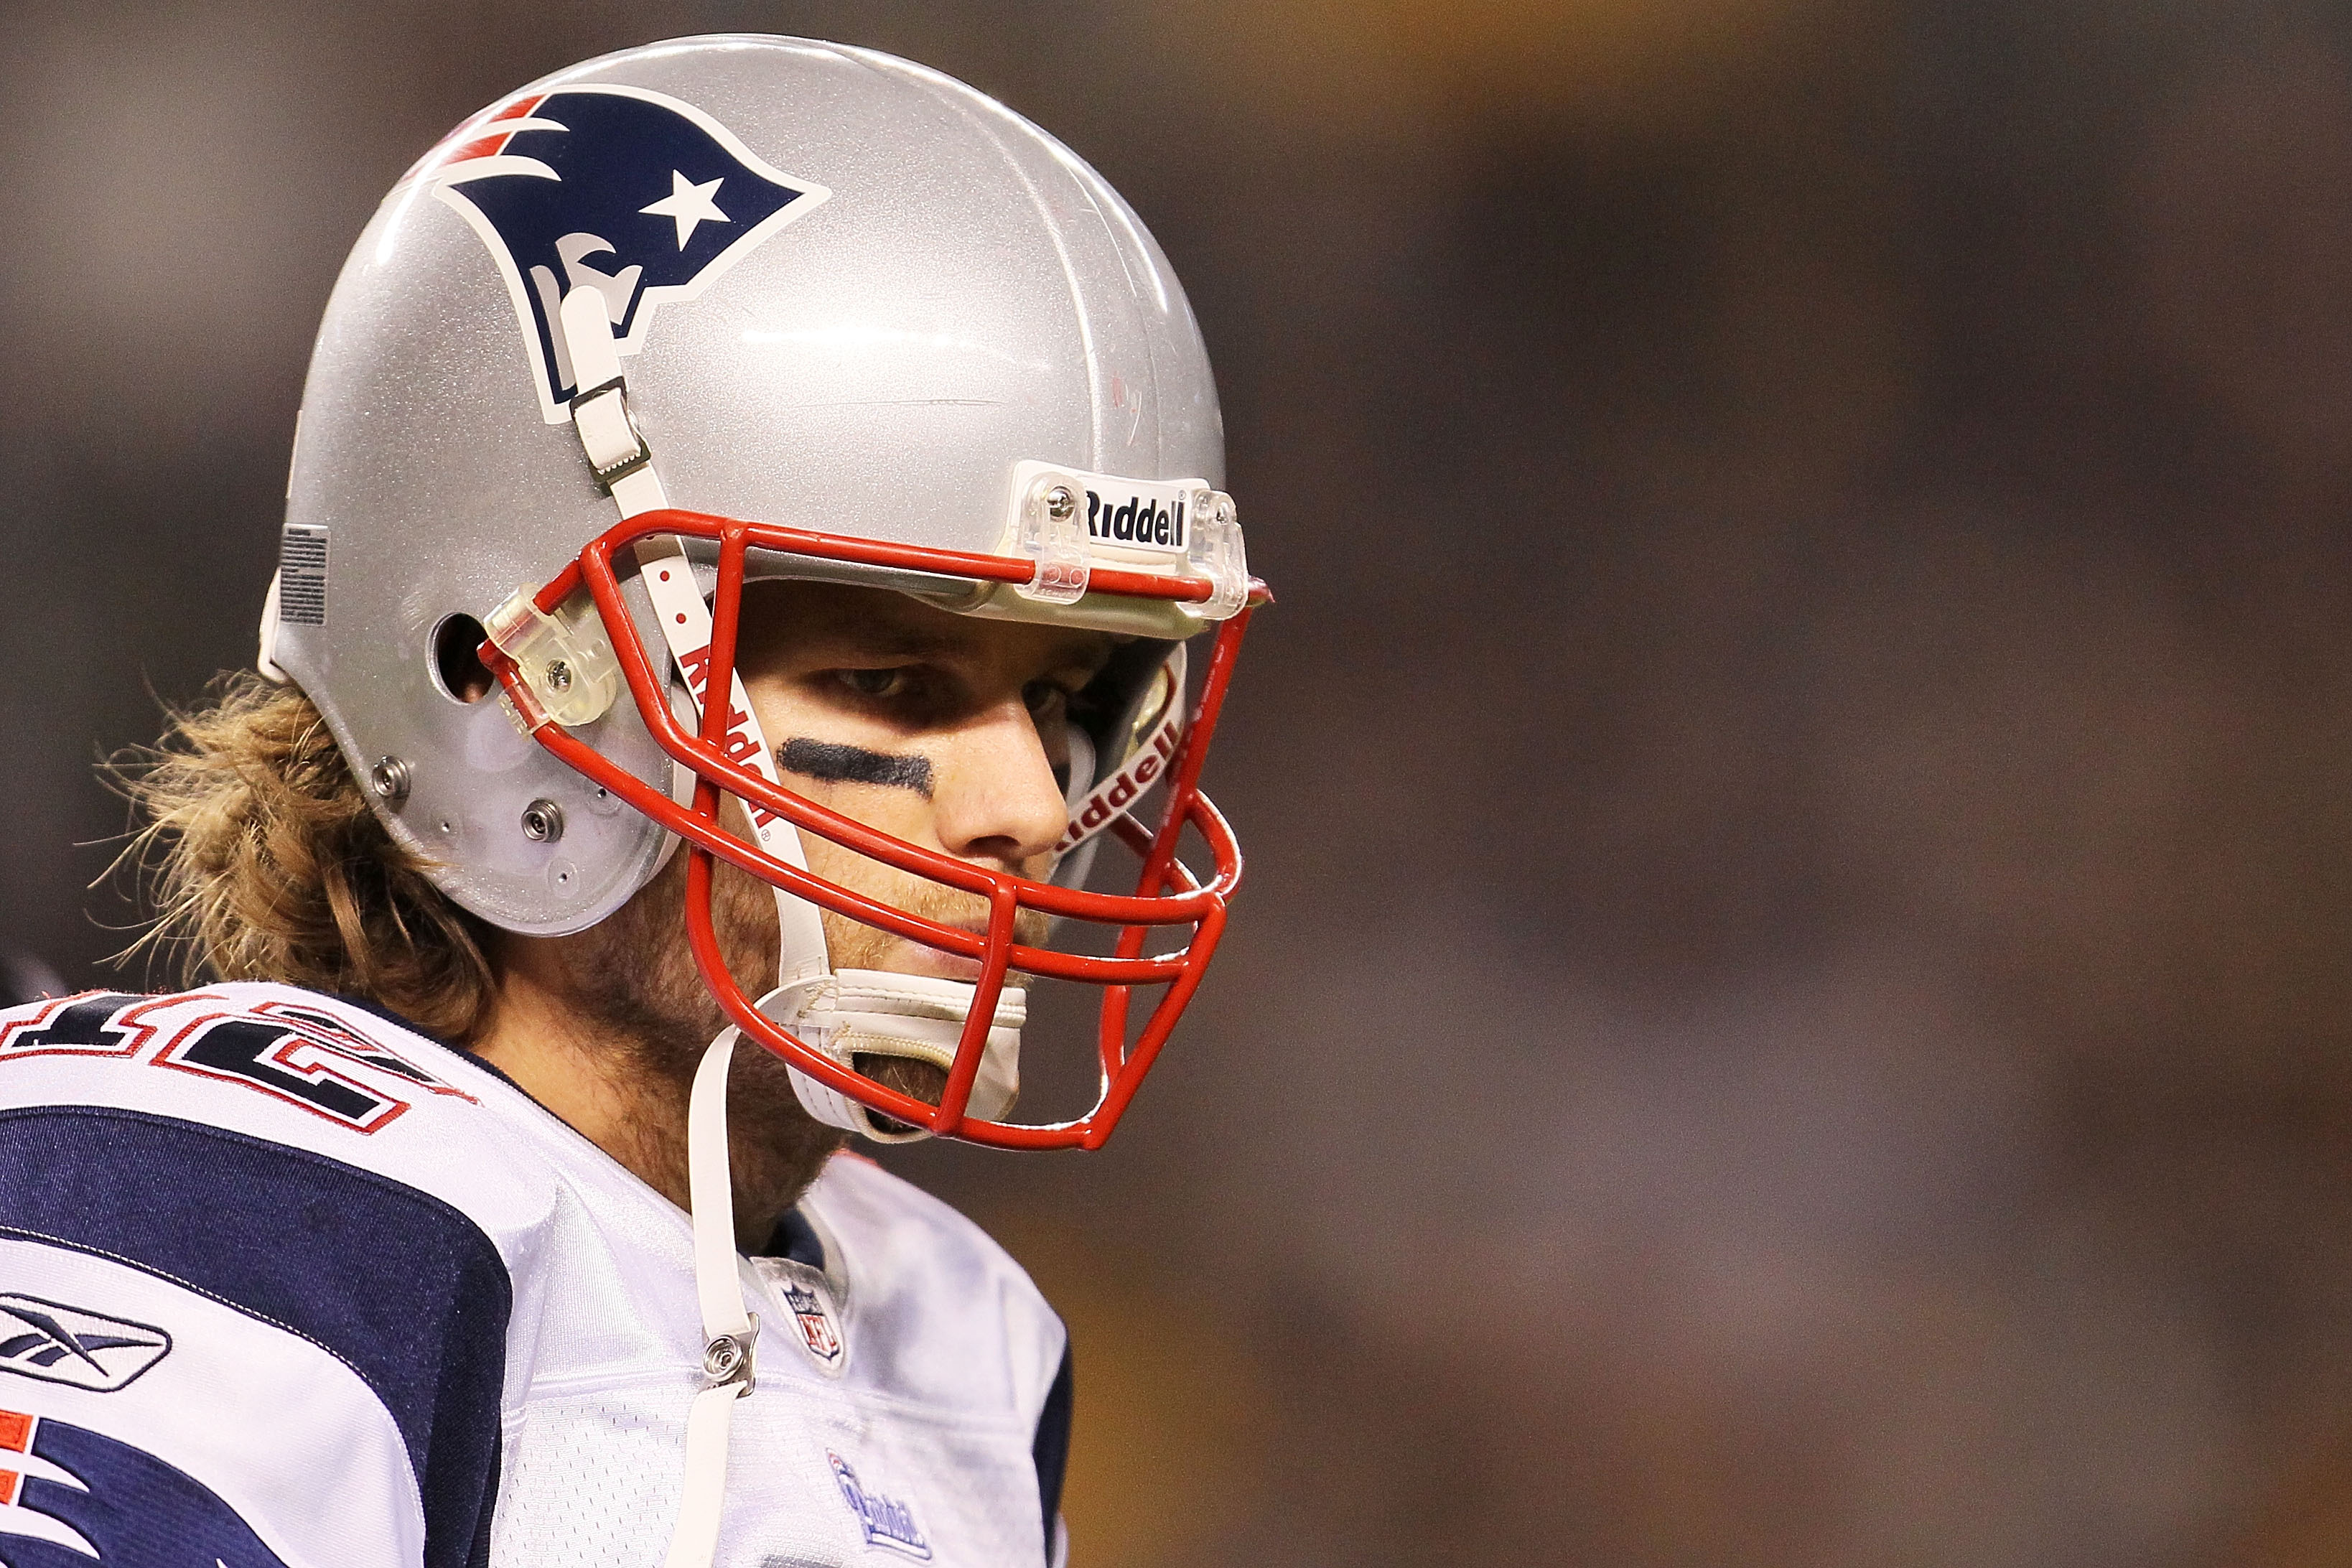 PITTSBURGH - NOVEMBER 14:  Tom Brady #12 of the New England Patriots waits for play to resume against the Pittsburgh Steelers on November 14, 2010 at Heinz Field in Pittsburgh, Pennsylvania.  (Photo by Chris McGrath/Getty Images)